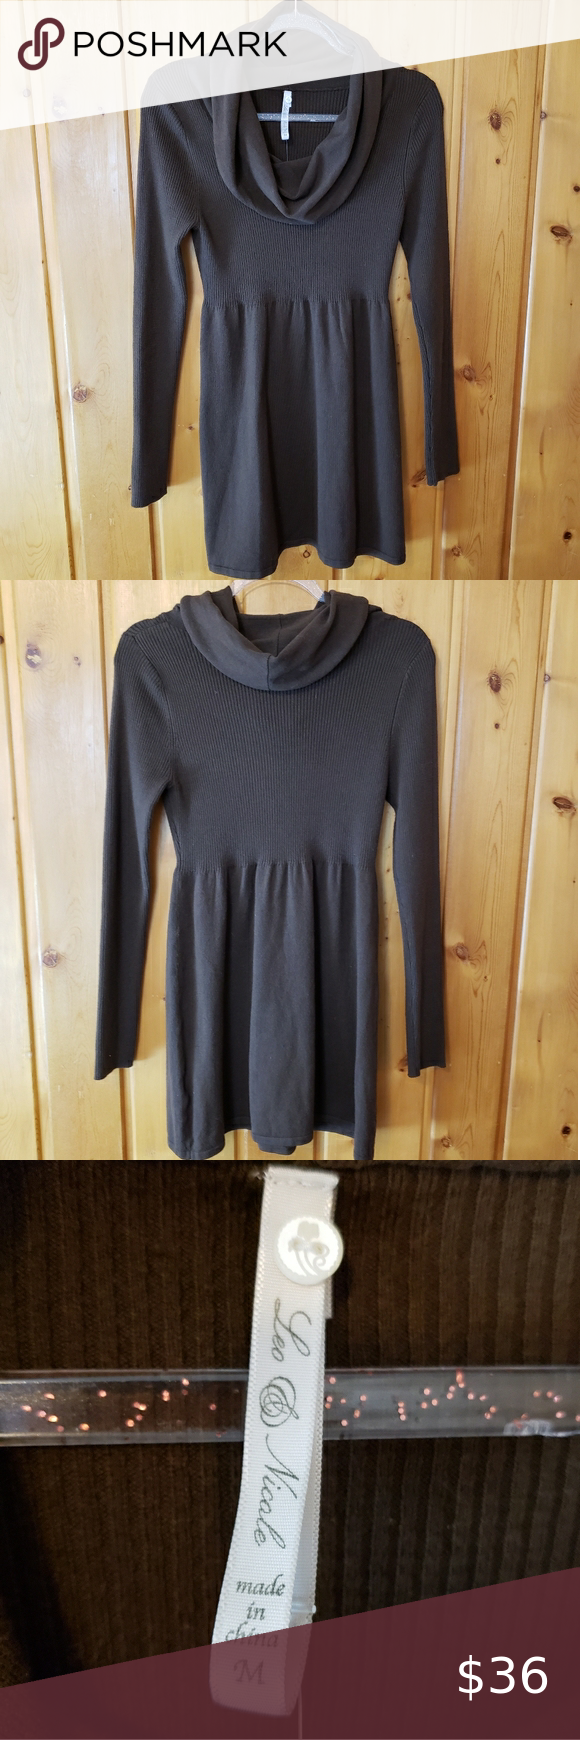 Leo & Nicole Cowl Neck Sweater Dress Tunic